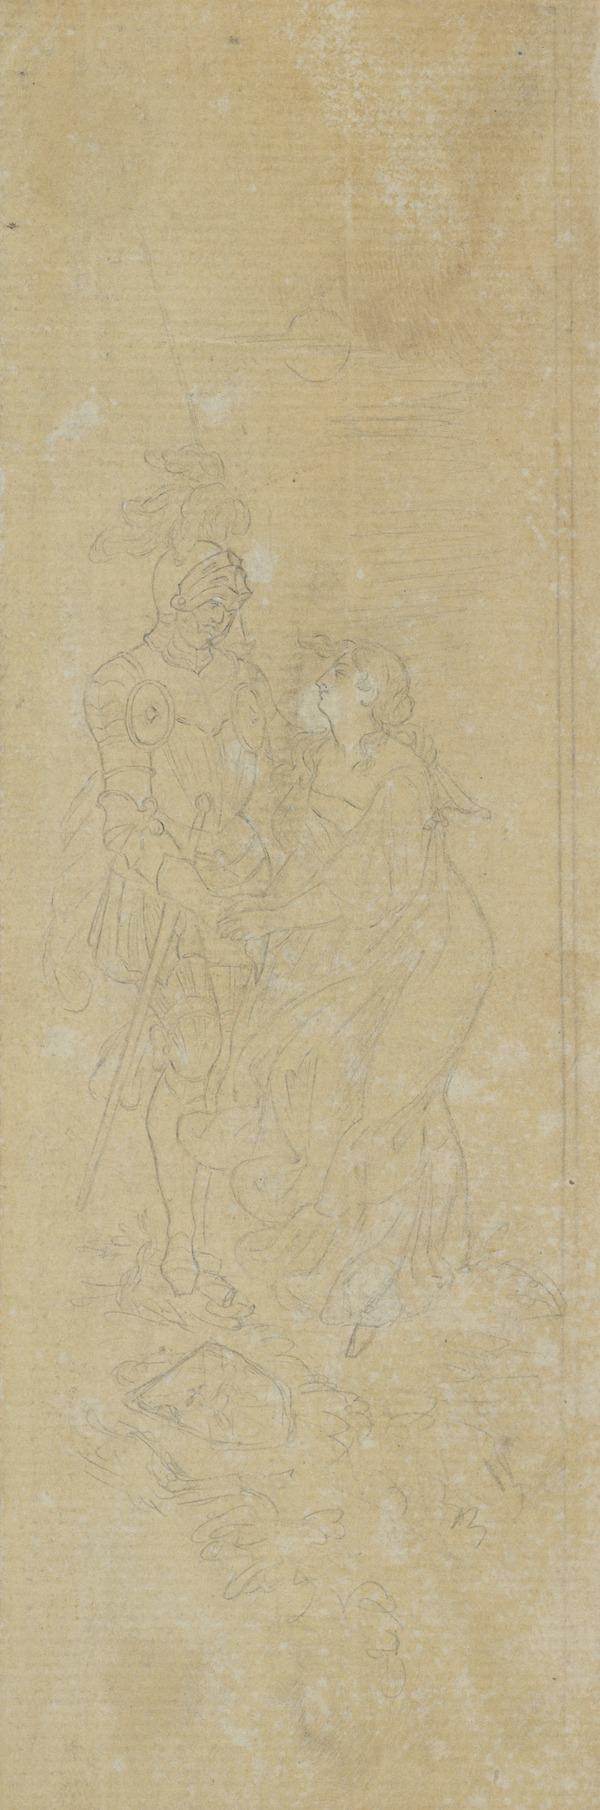 Sir Richard Coldinghame and Lady Smailholm. Illustration to Sir Walter Scott's 'The Eve of Saint John'